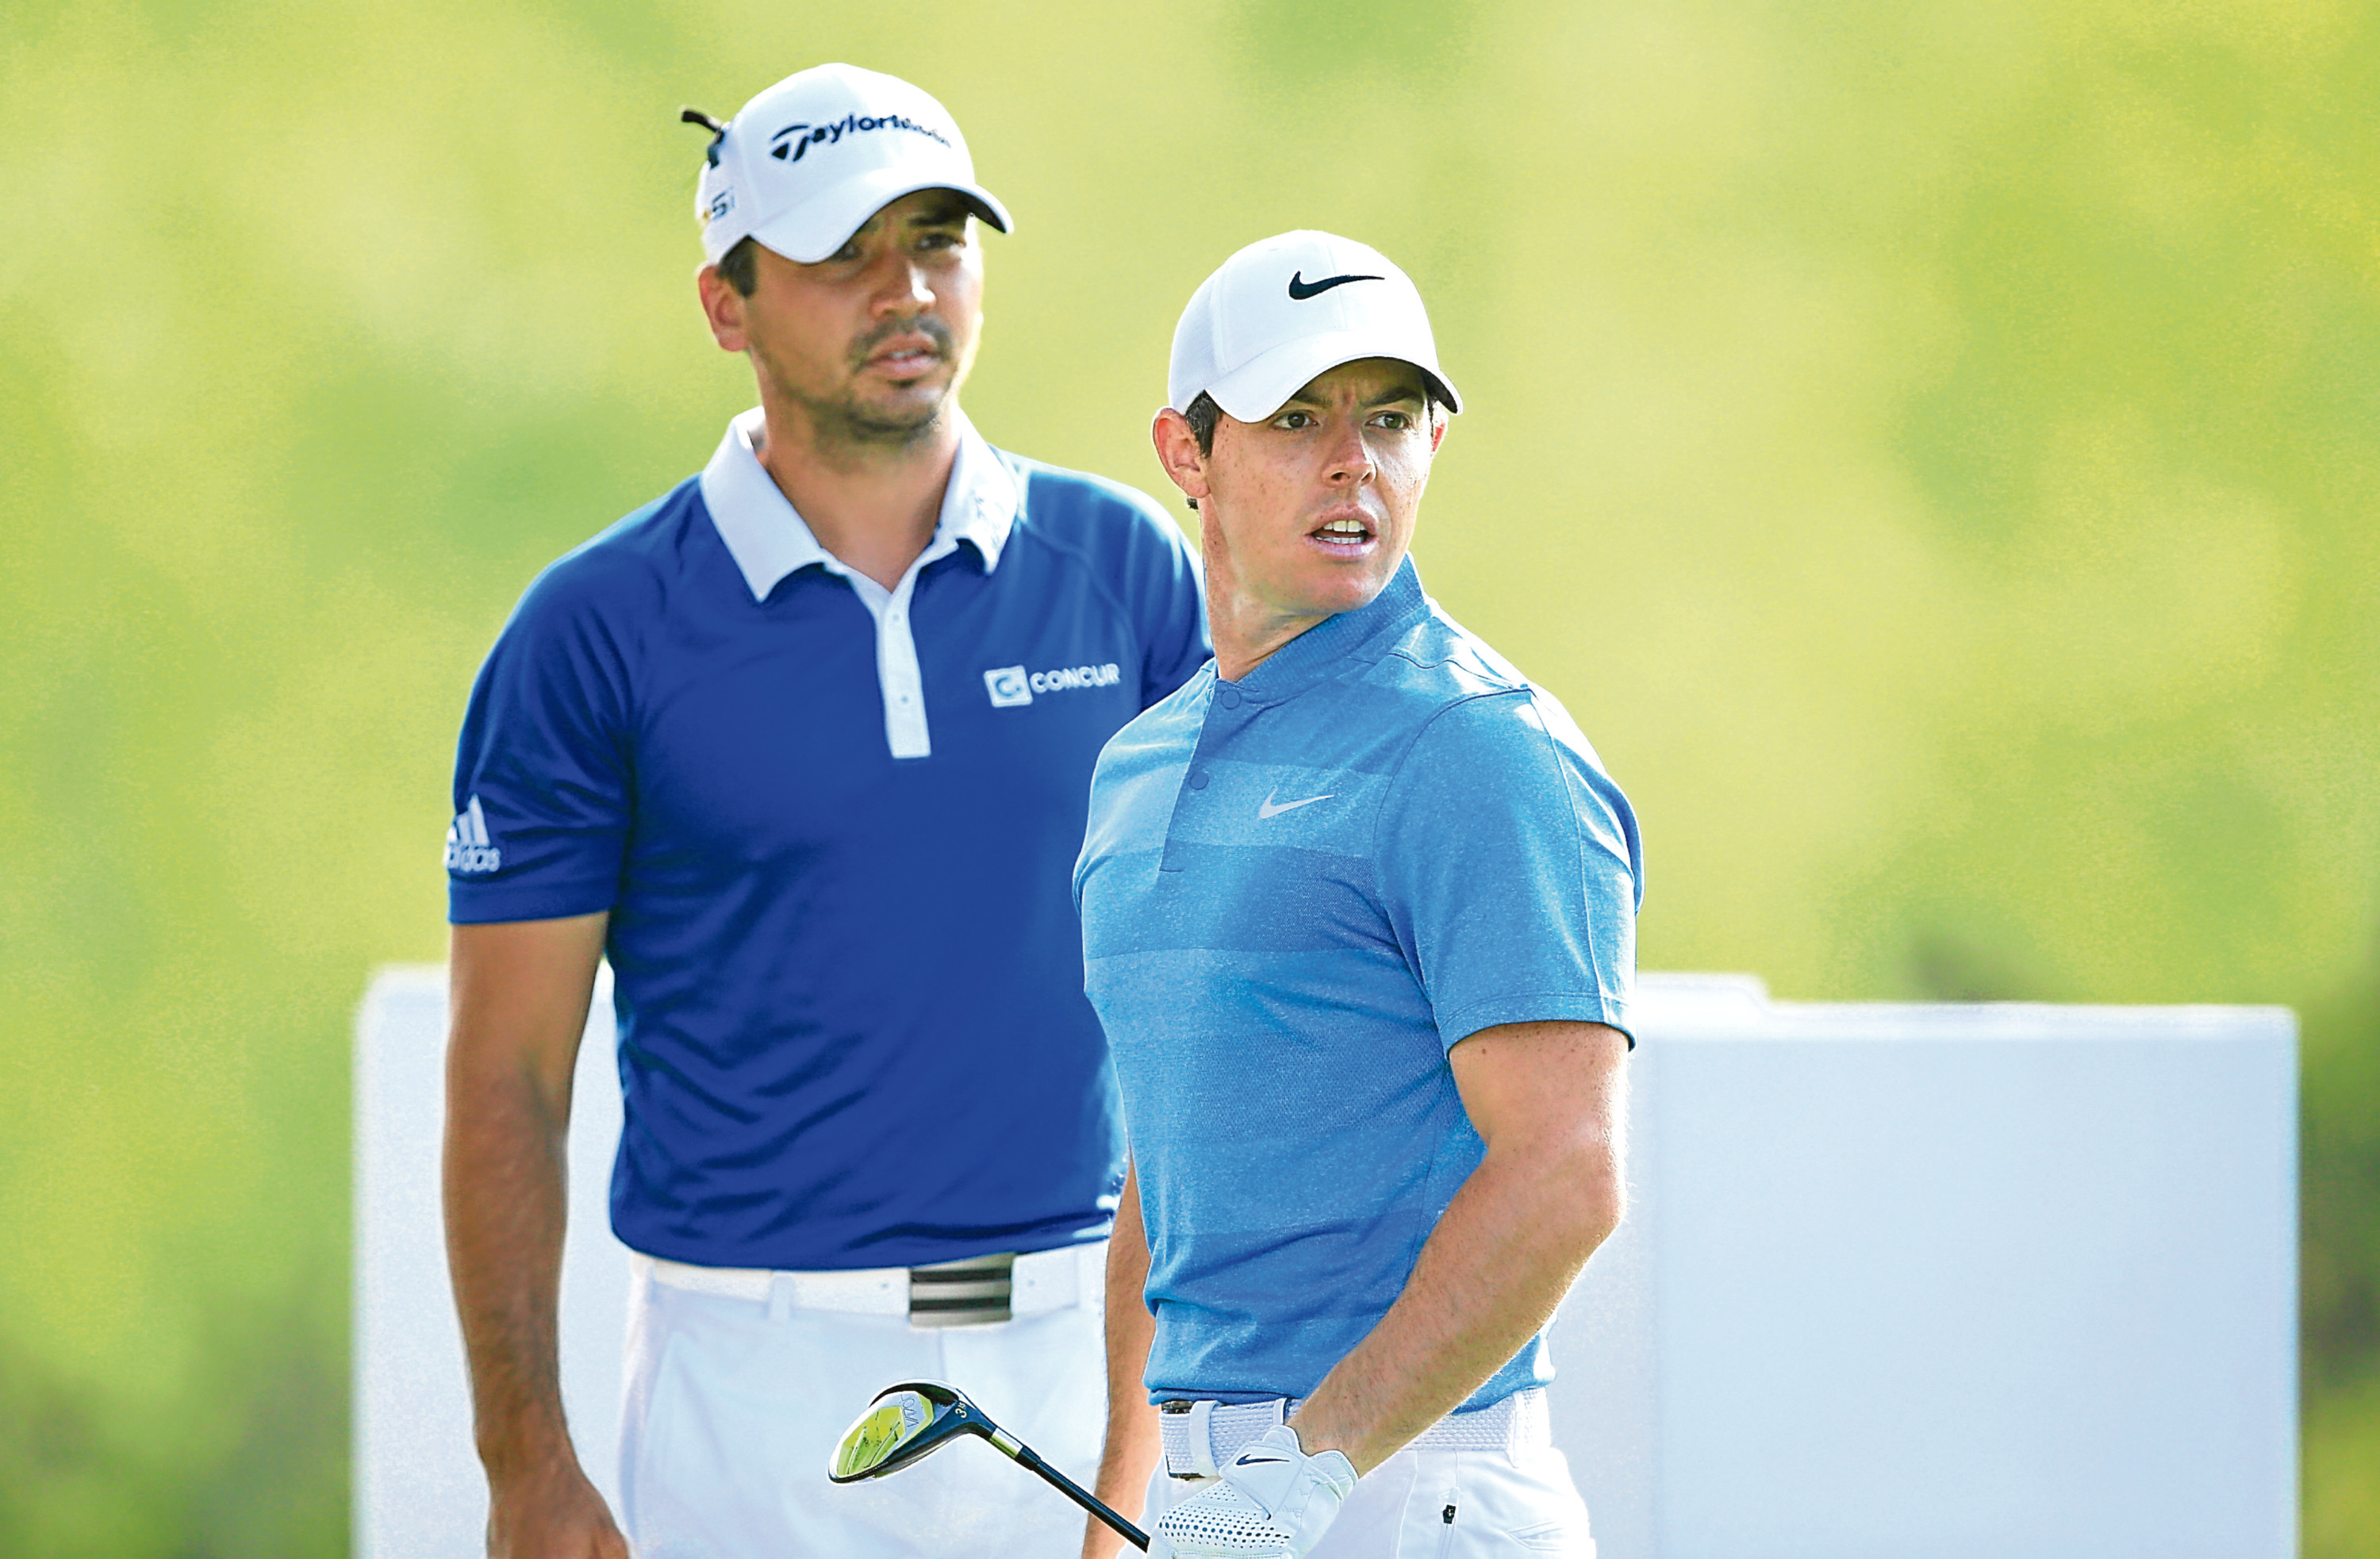 Jason Day and Rory McIlroy have already pulled out of Rio; others will follow this week.